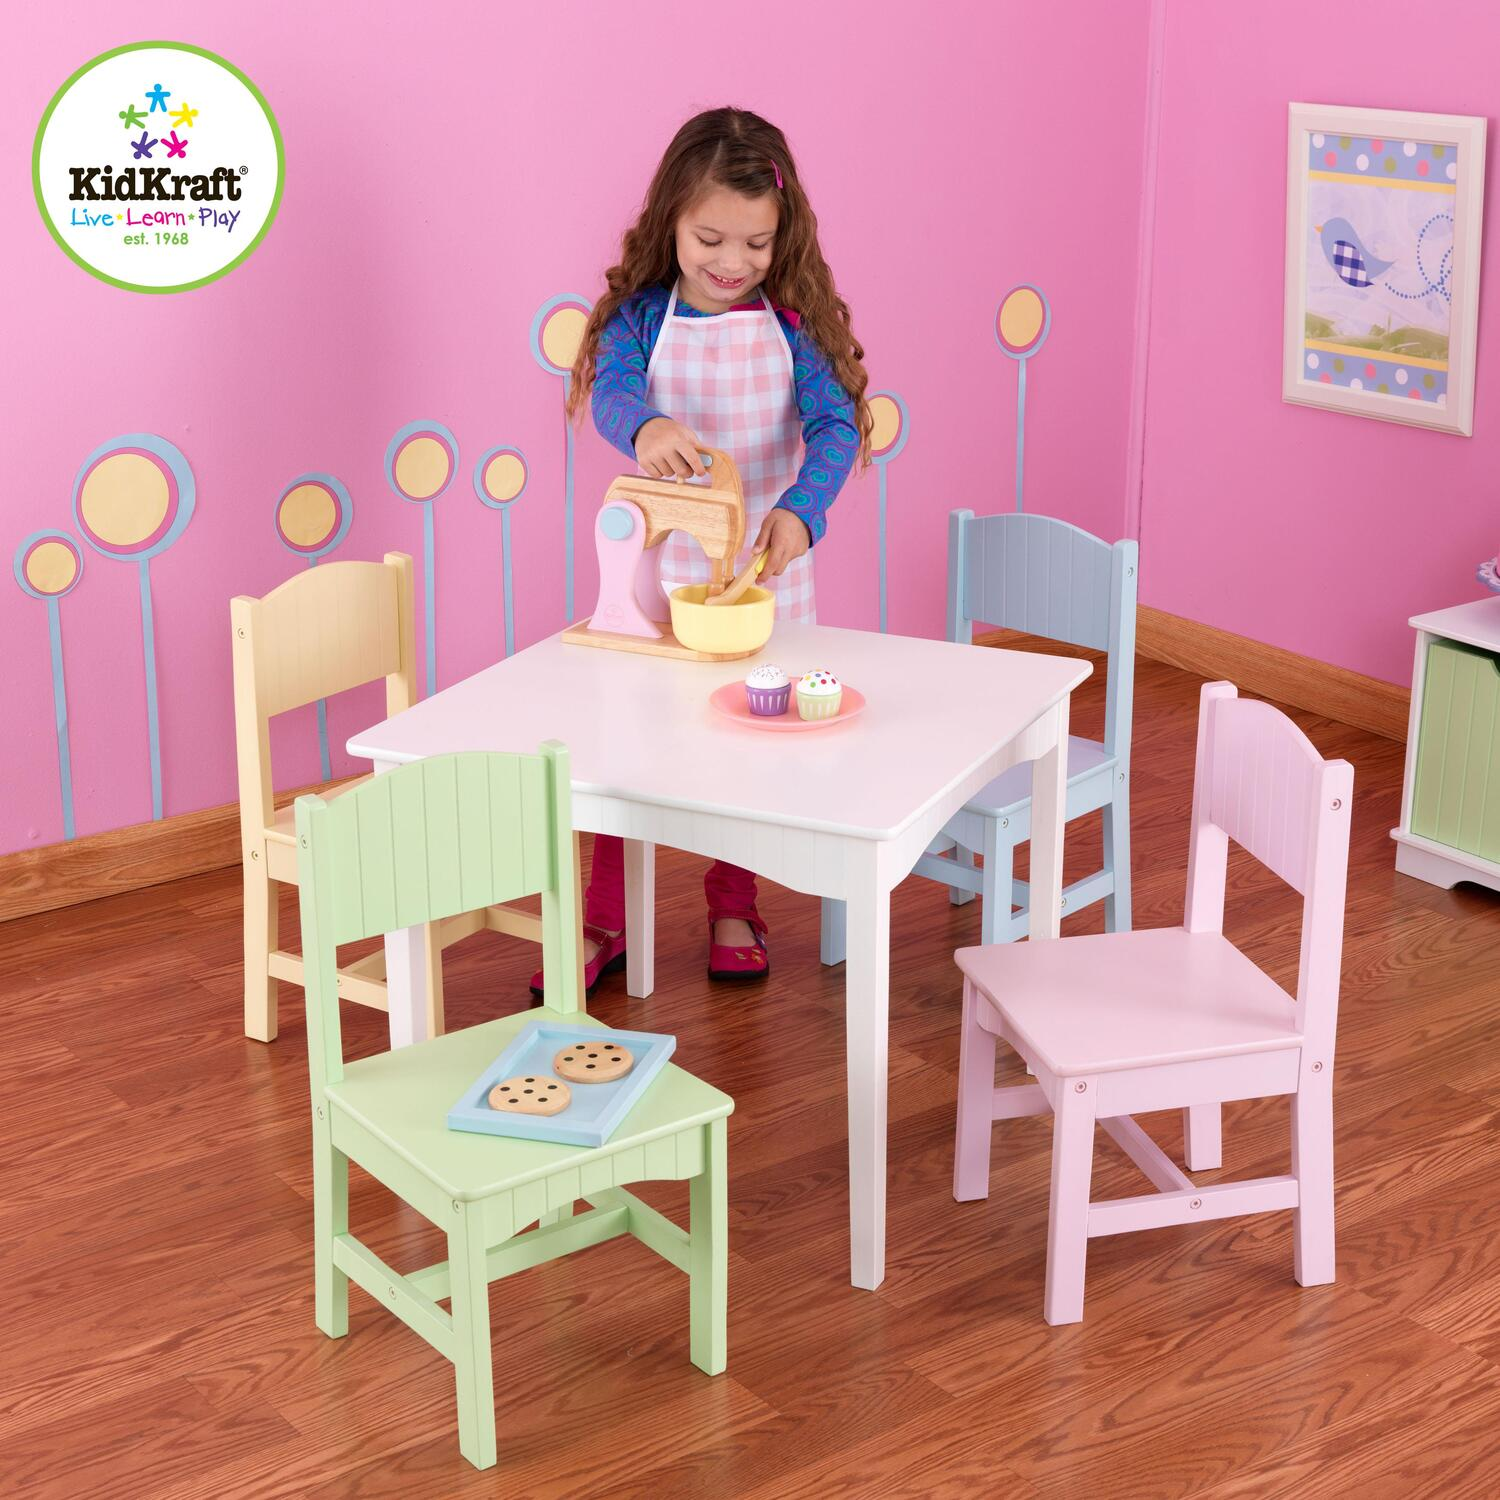 Kidkraft nantucket table 4 pastel chairs by oj commerce for Kids craft table canada